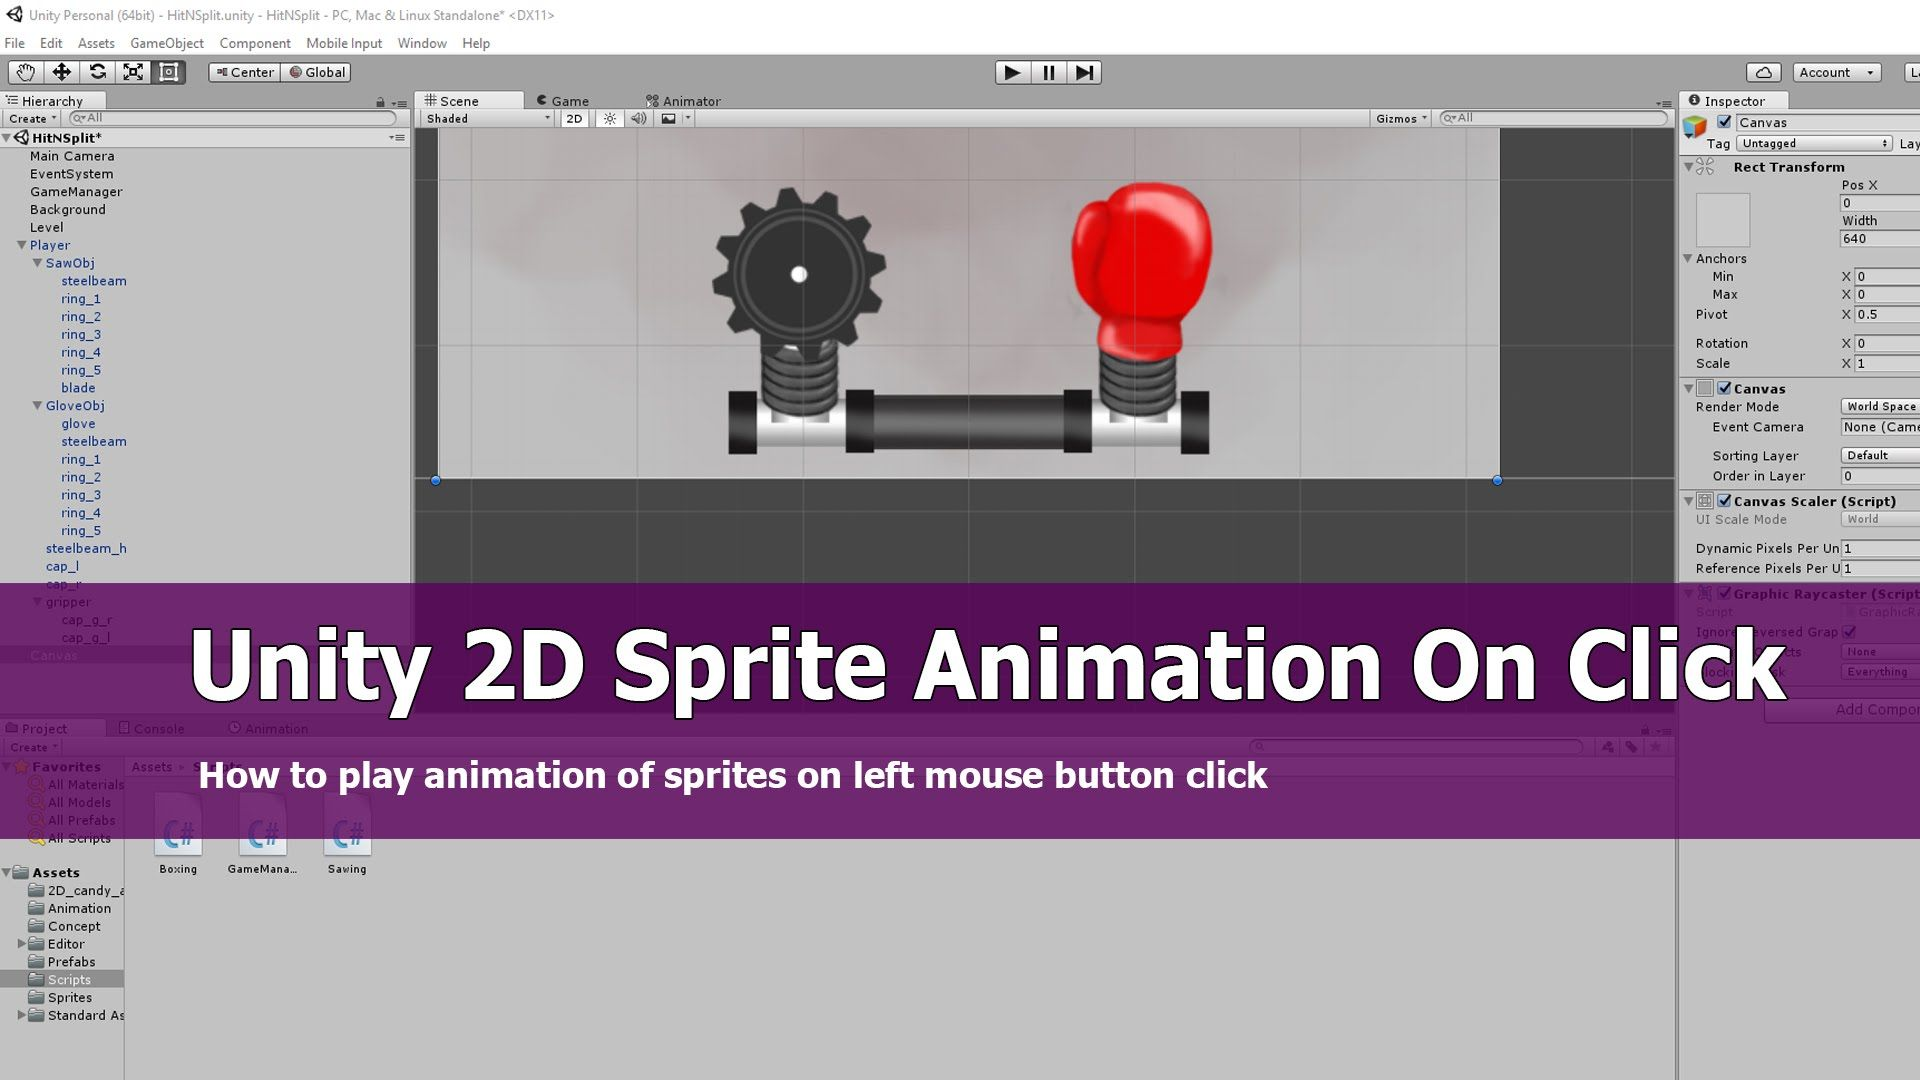 Unity 2D Sprite Animation On Click Tutorial | Neat Game